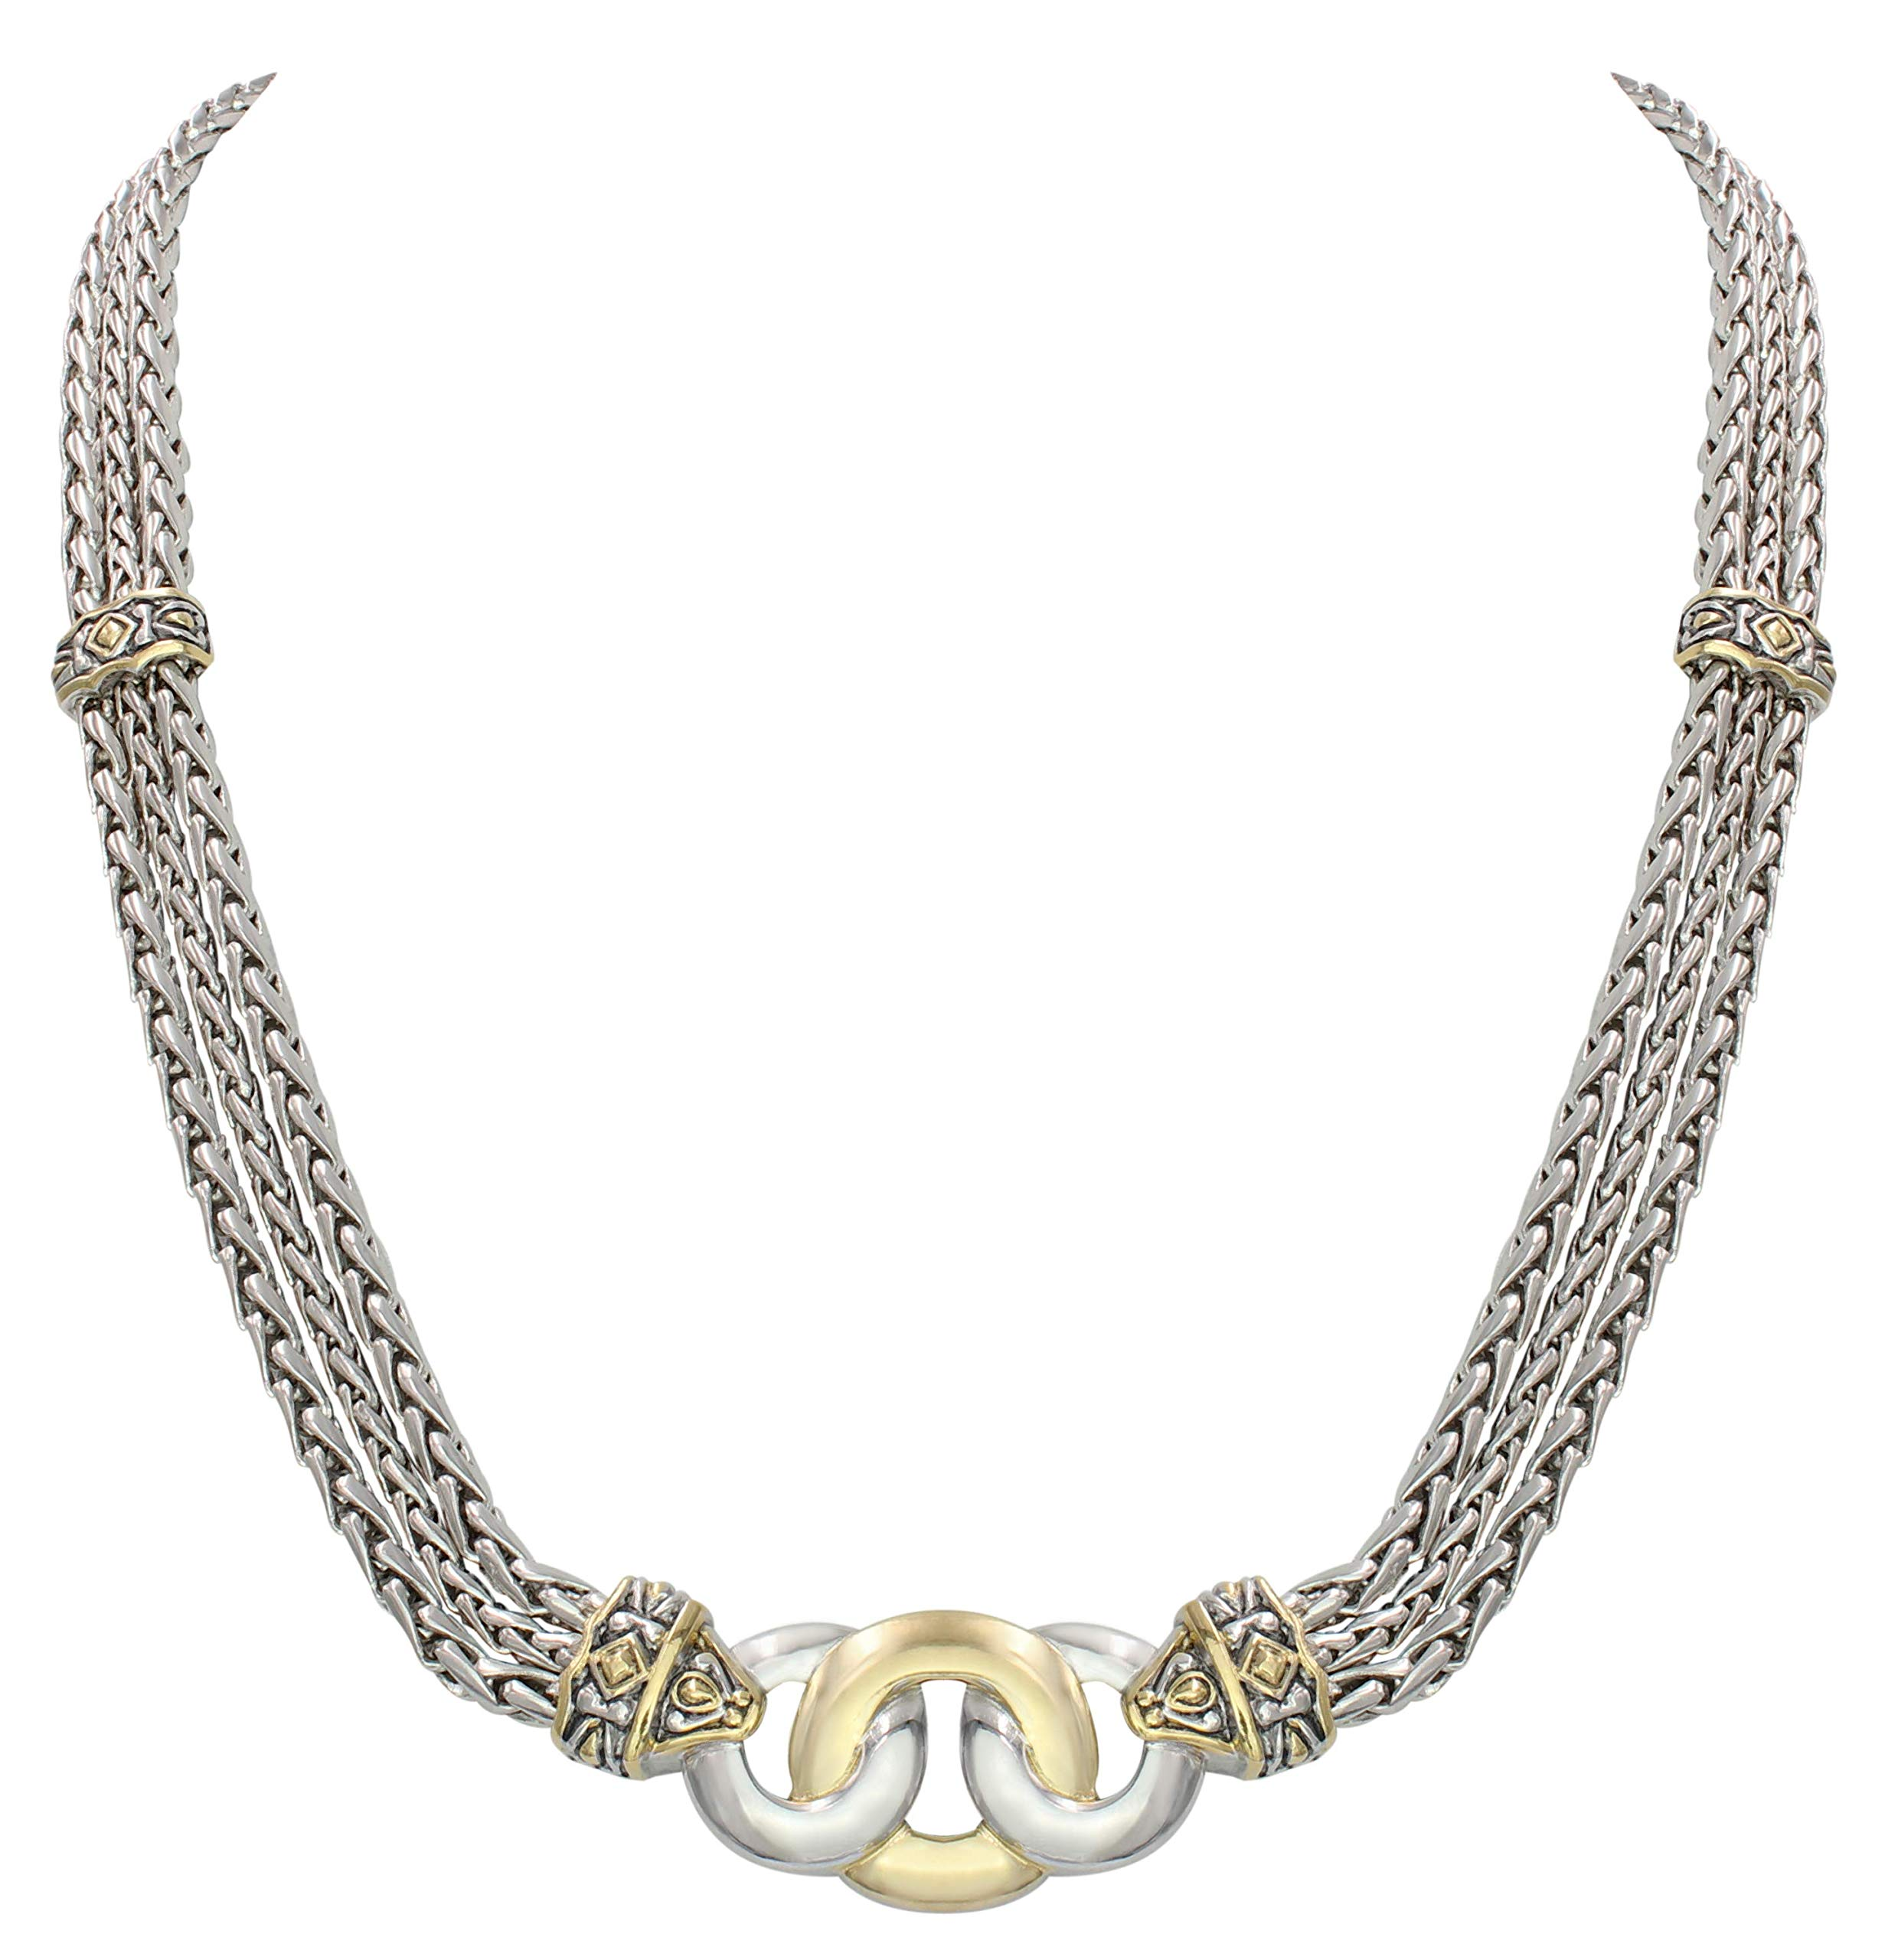 John Medeiros Two Tone Necklace for Women Triple Strand Chain Three Circle Design Made in America 17'' Ladies Necklace by John Medeiros